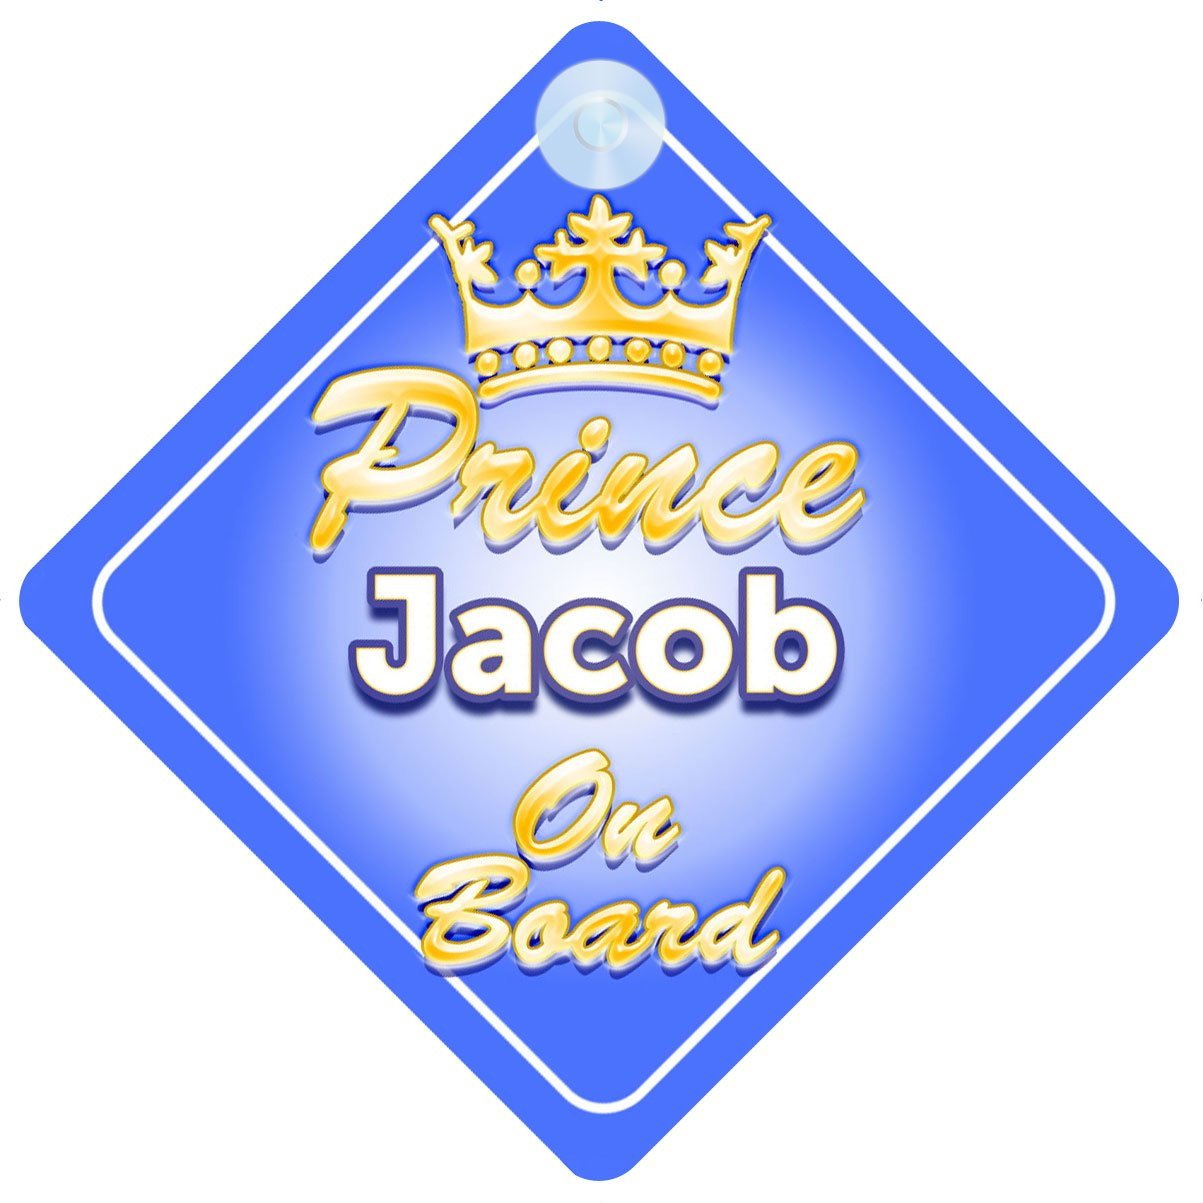 Crown Prince Jacob On Board Personalised Baby / Child Boys Car Sign